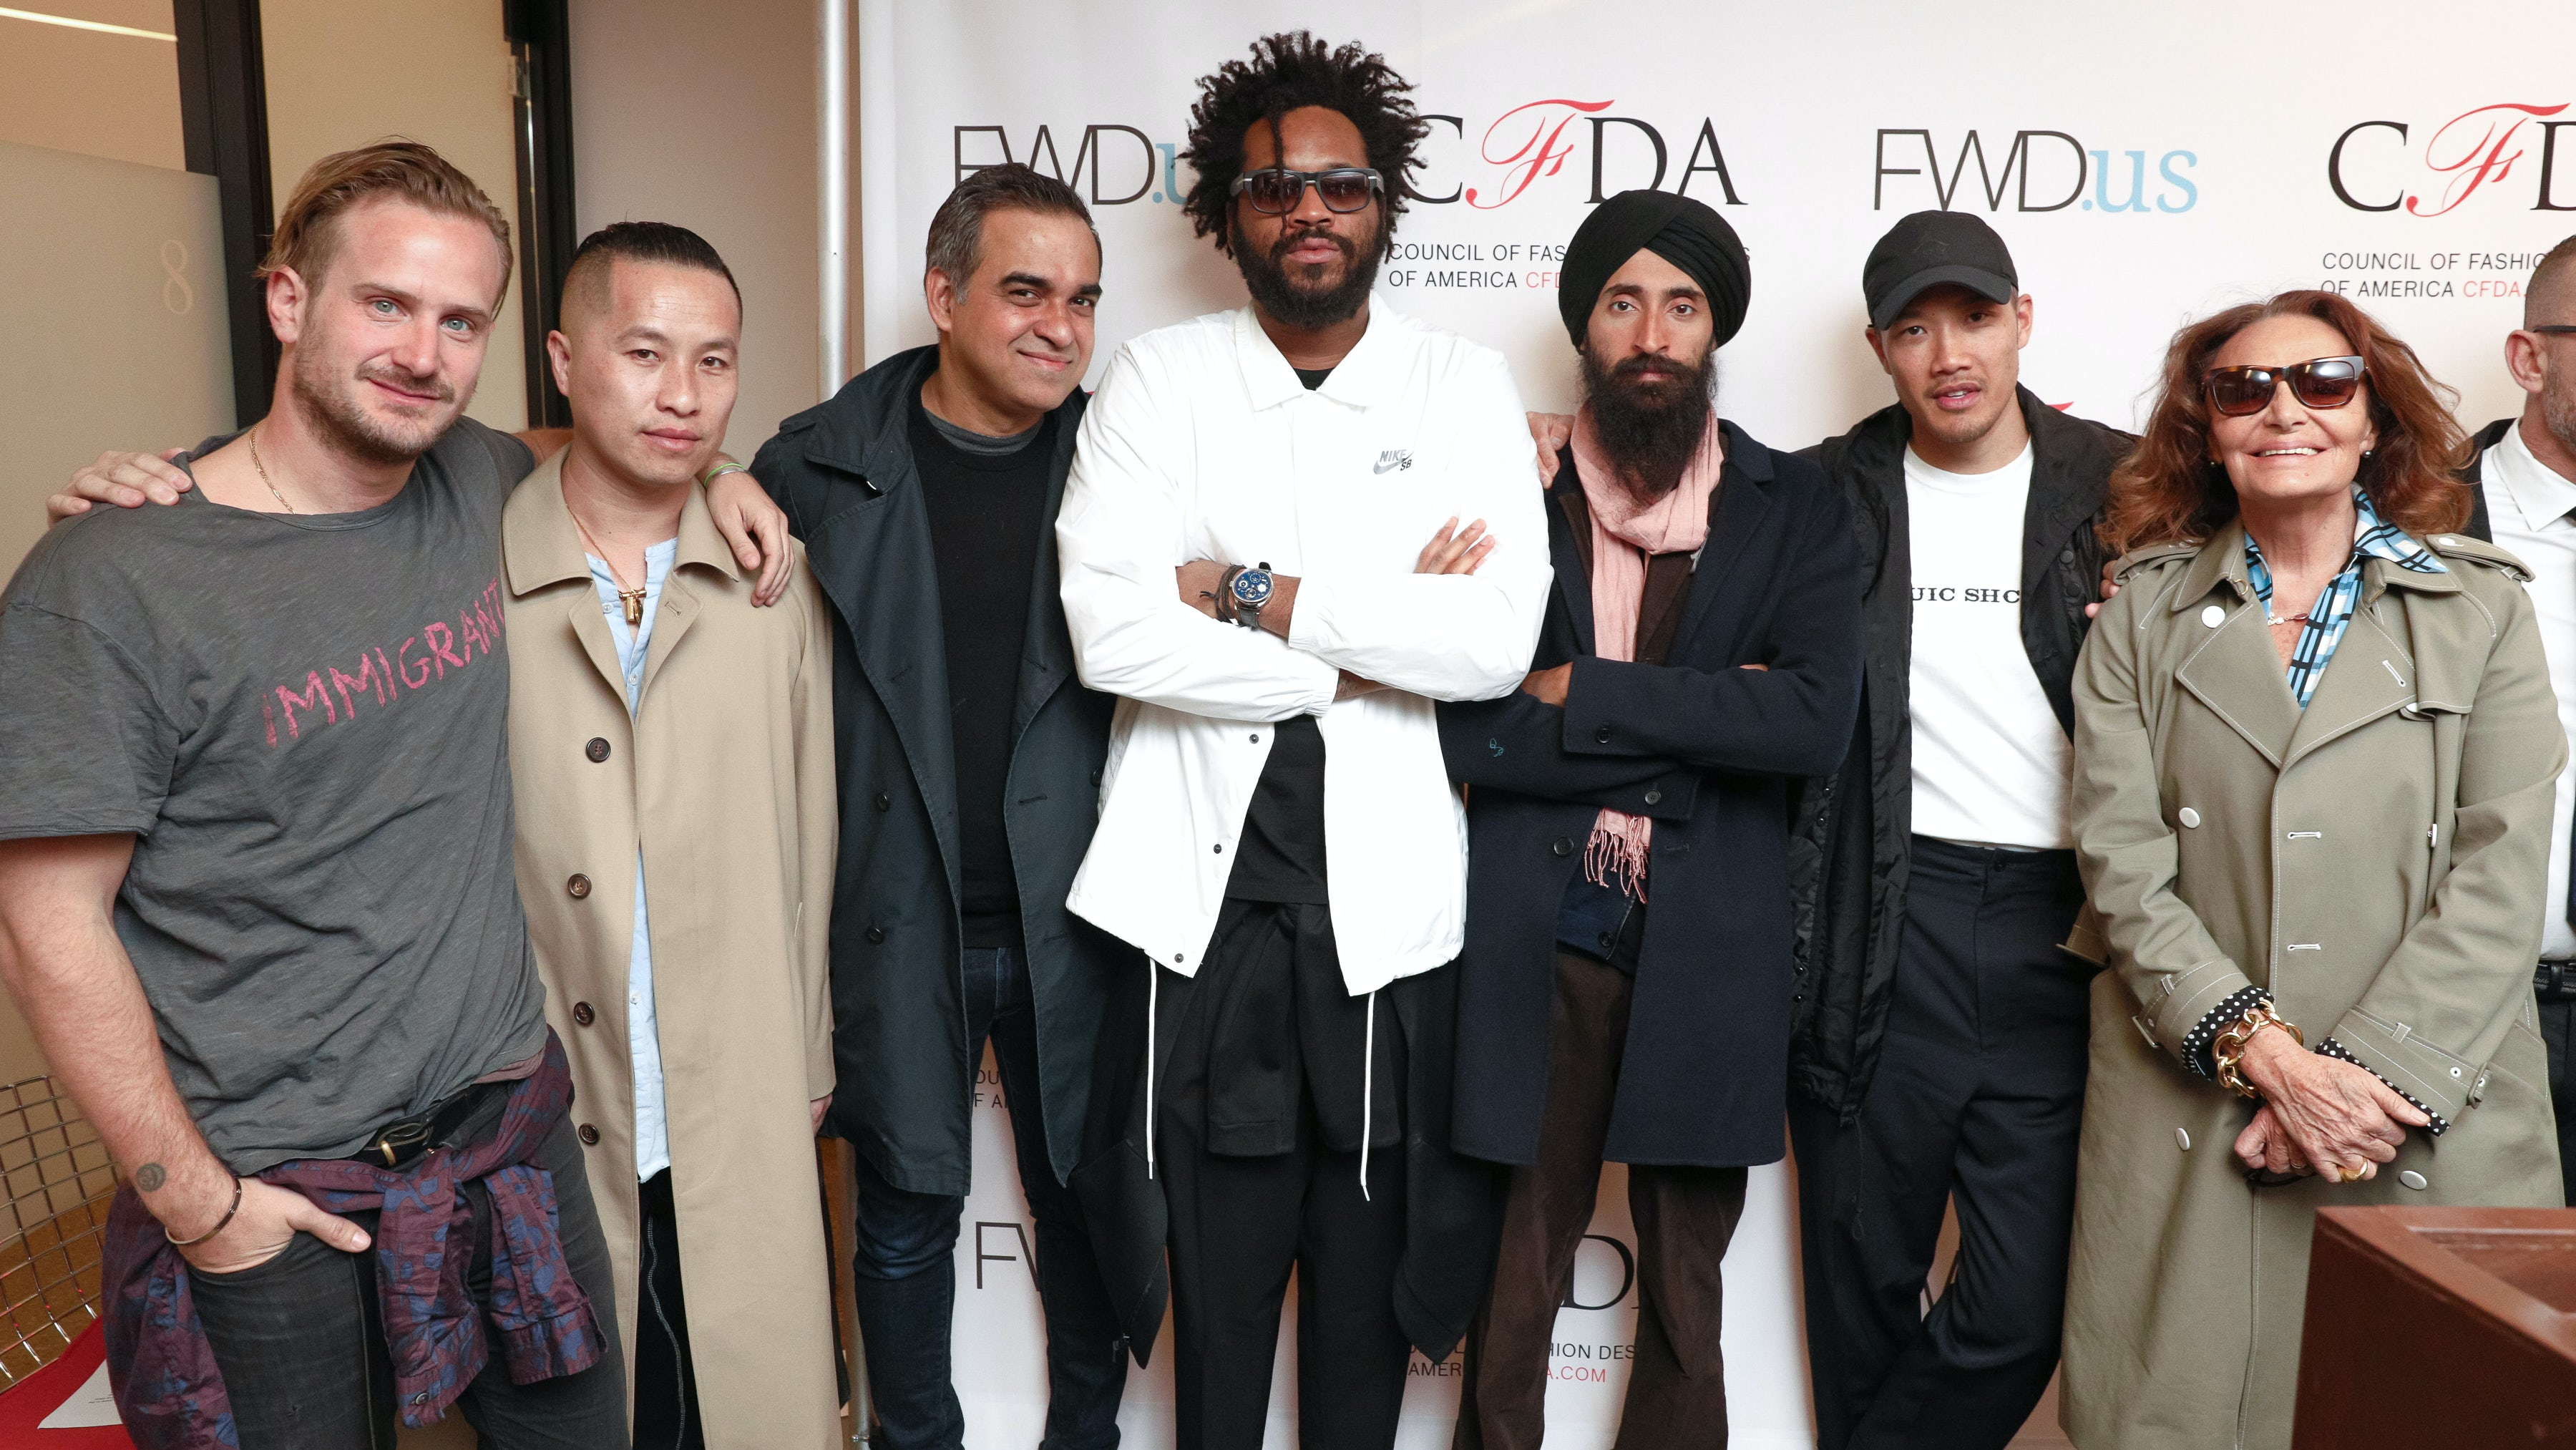 Robert Geller, Phillip Lim, Bibhu Mohapatra, Maxwell Osborne, Waris Ahluwalia, Dao-Yi Chow and Diane von Furstenberg at the CFDA Fwd.Us press conference. | Source: Matteo Prandoni/BFA.com